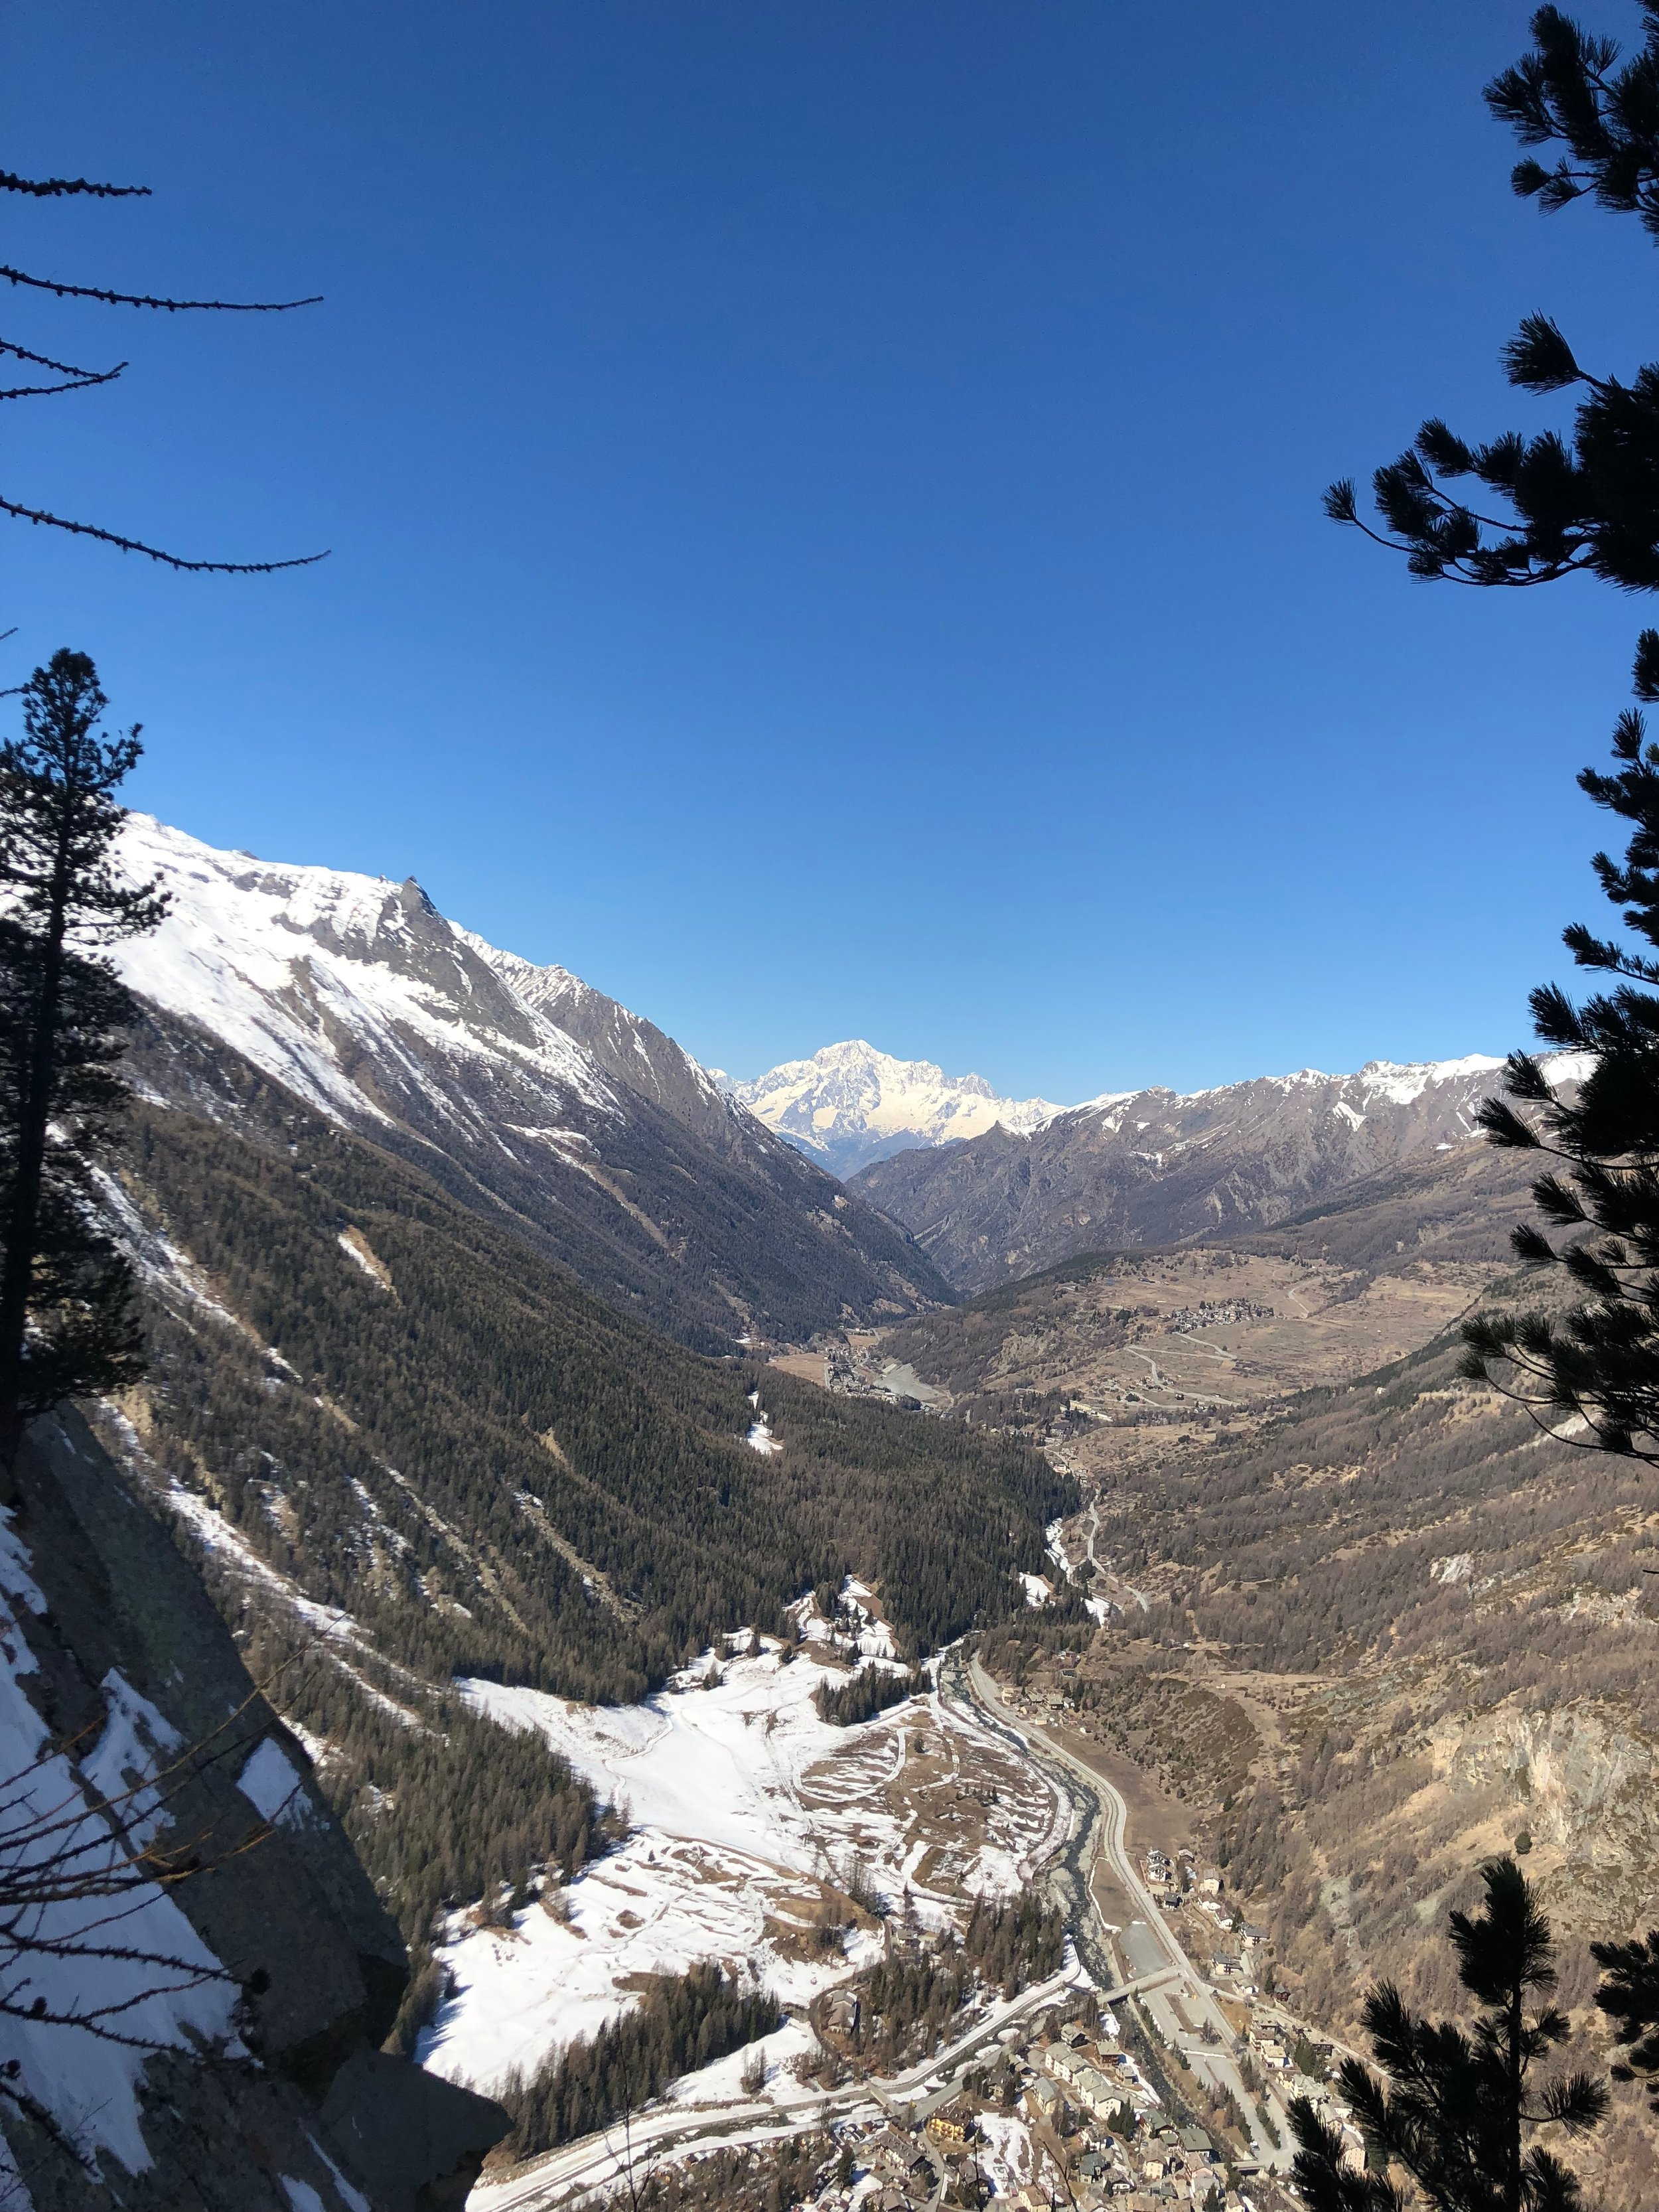 Top of pitch 6. Italy ain't too bad lookin